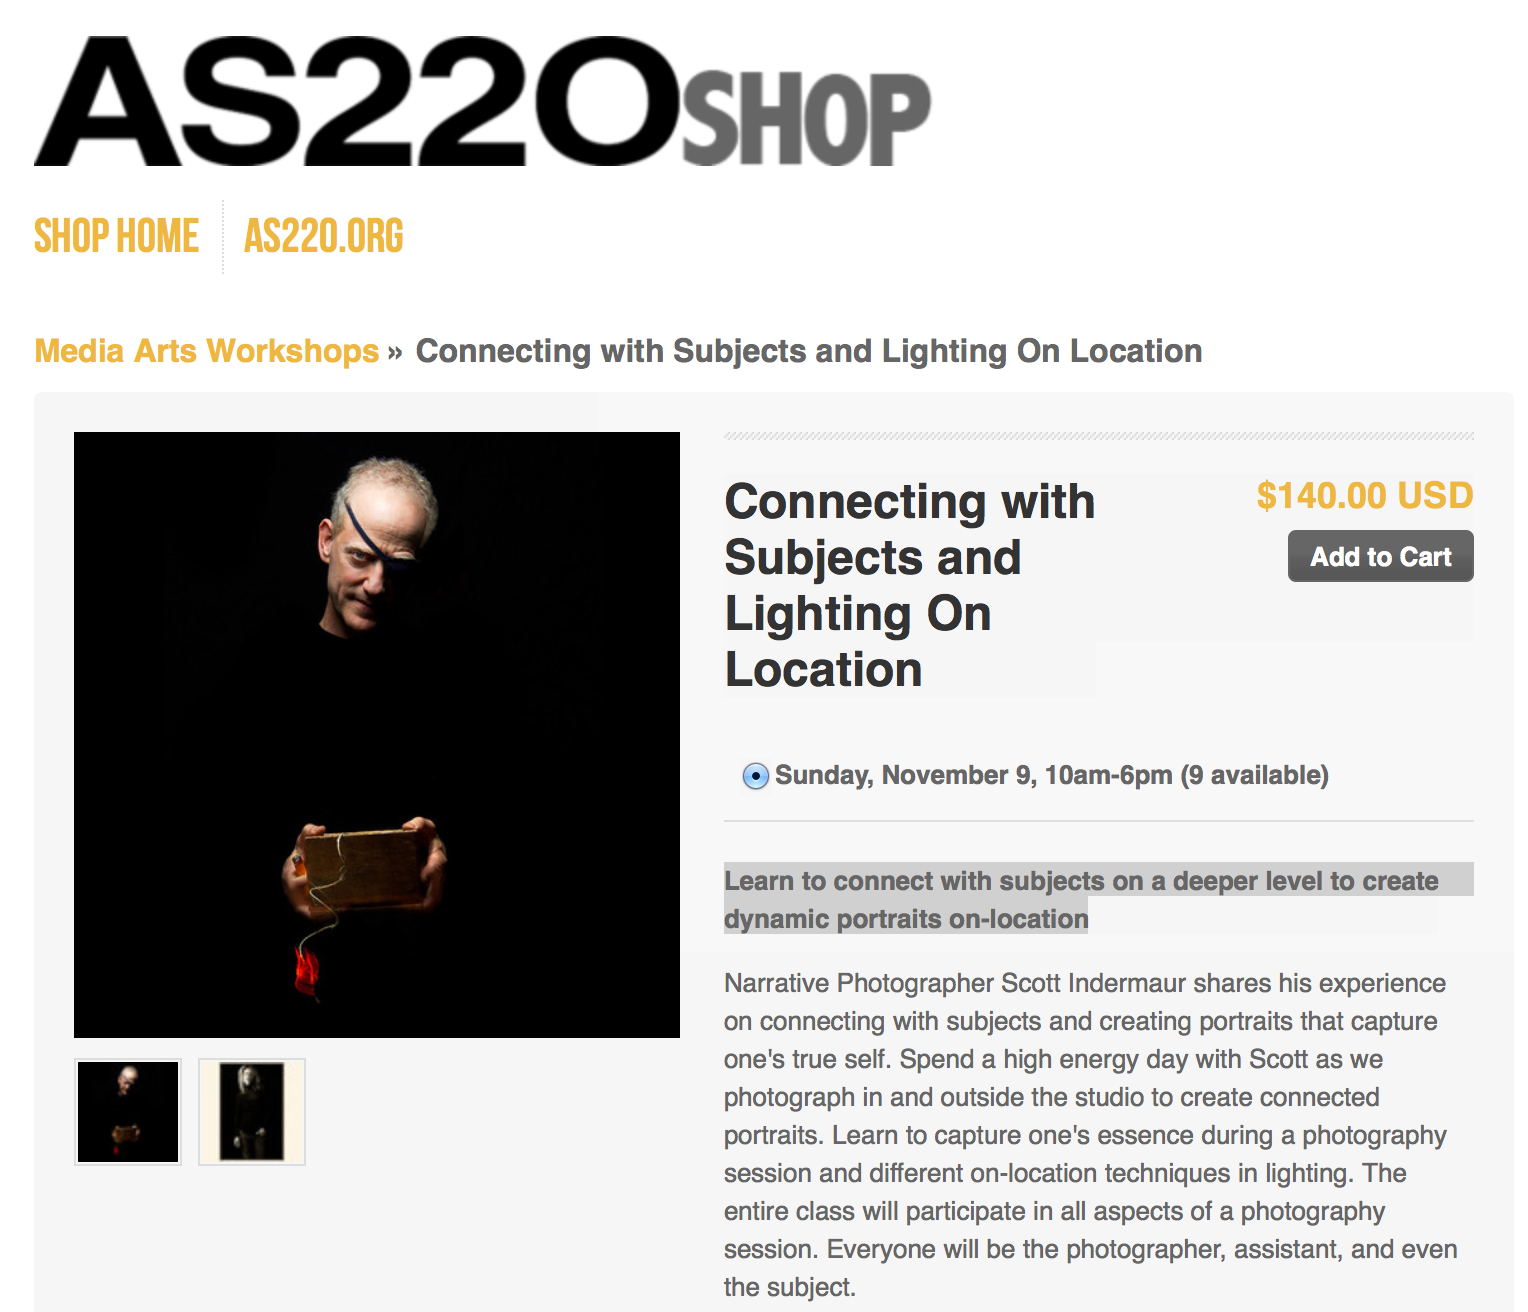 connecting_with_subjects_and_lighting_on_location___as220_shop.jpg